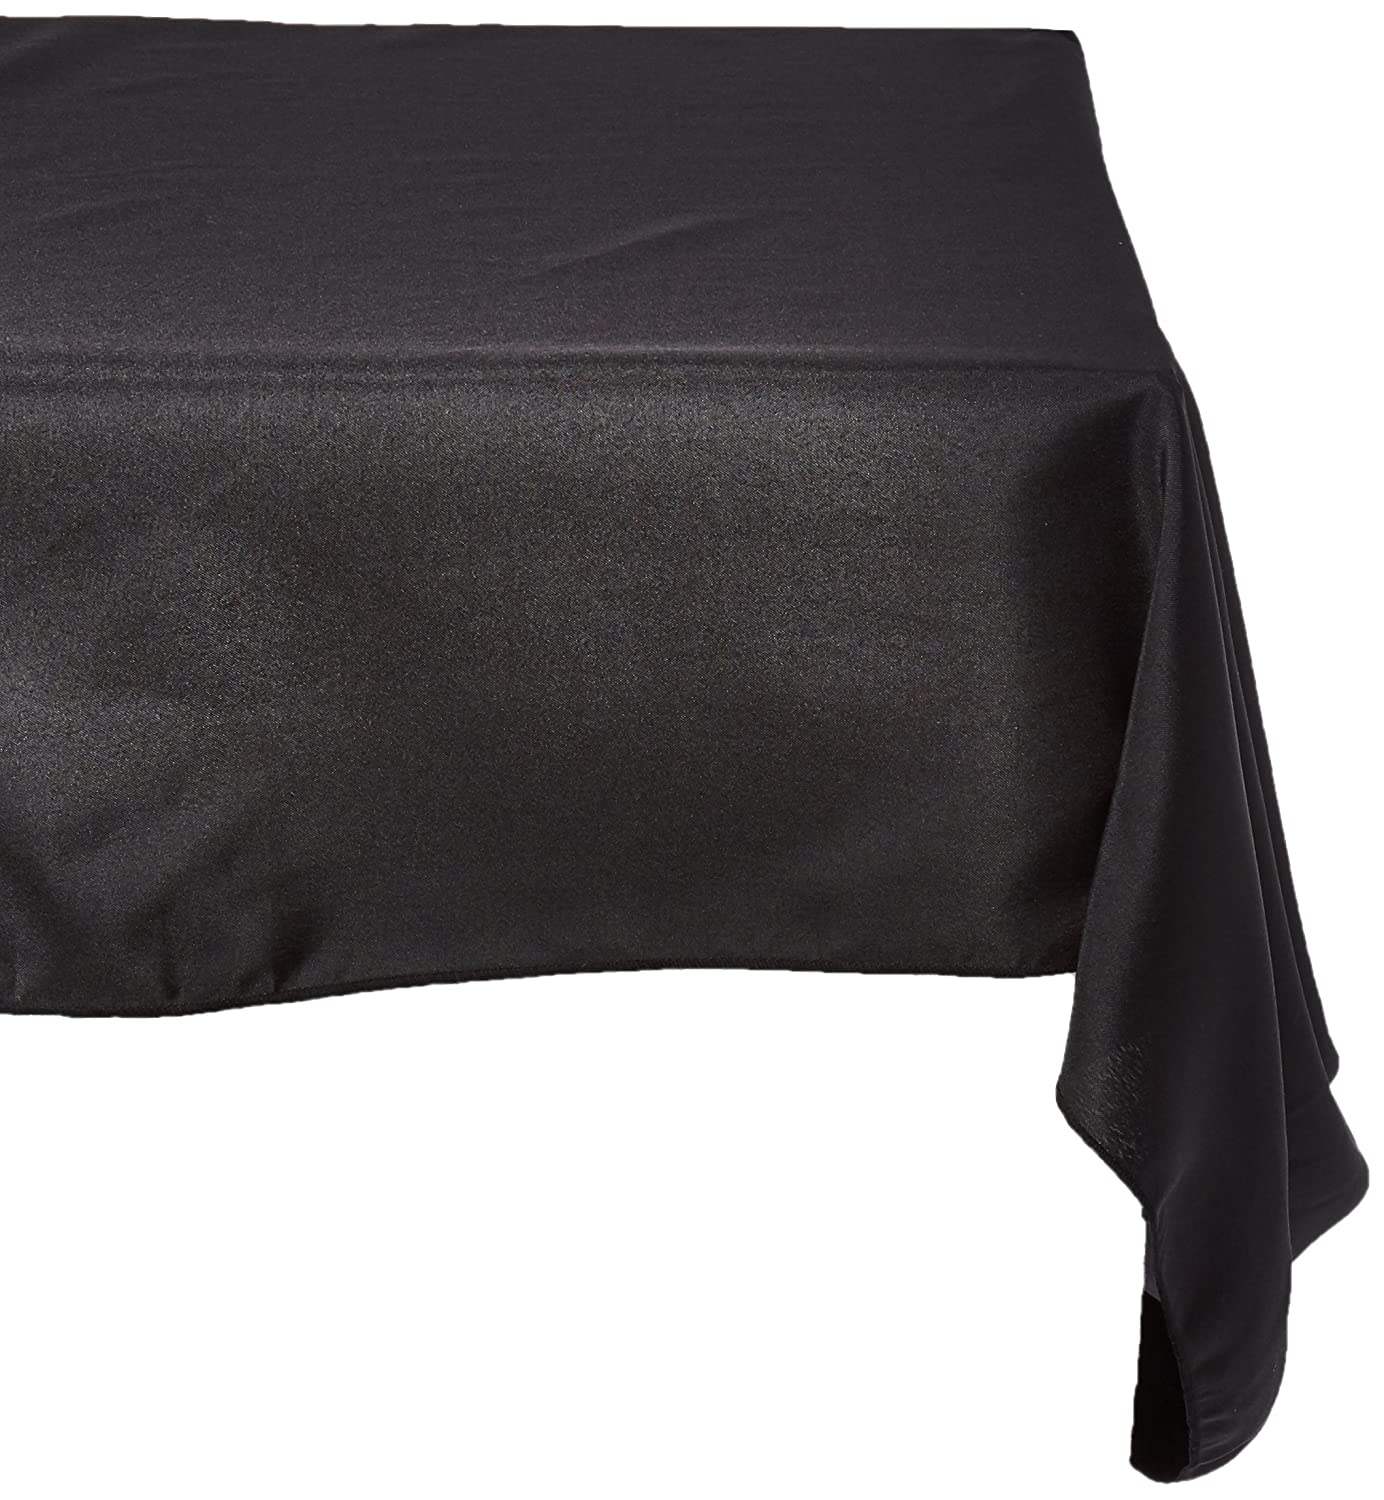 Design Black Tablecloth amazon com double knit polyester professional table cover 4 ft home kitchen